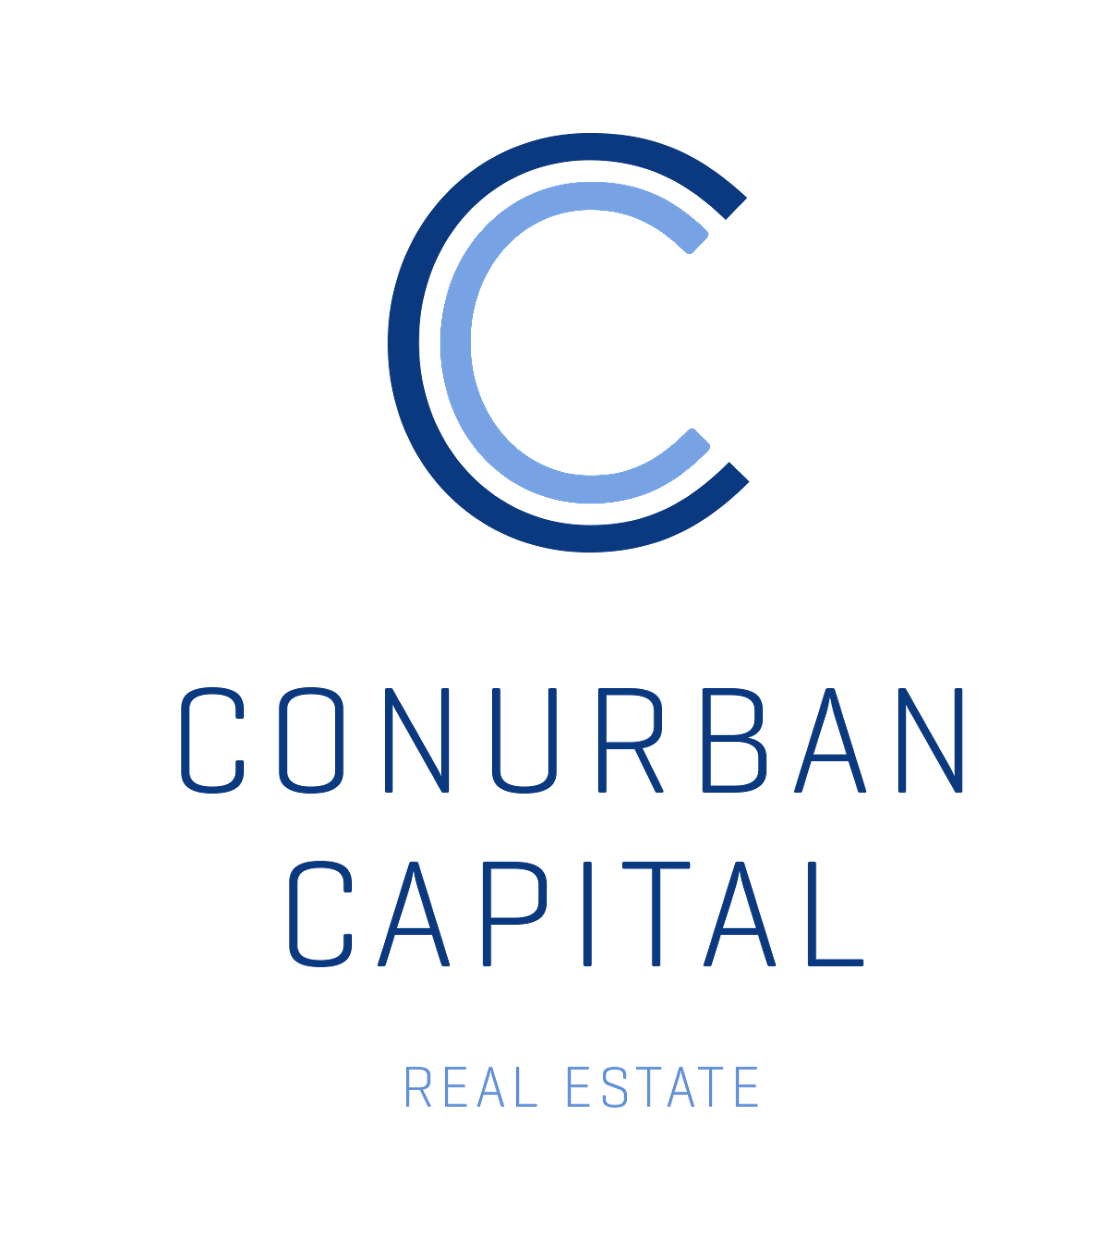 Conurban Capital